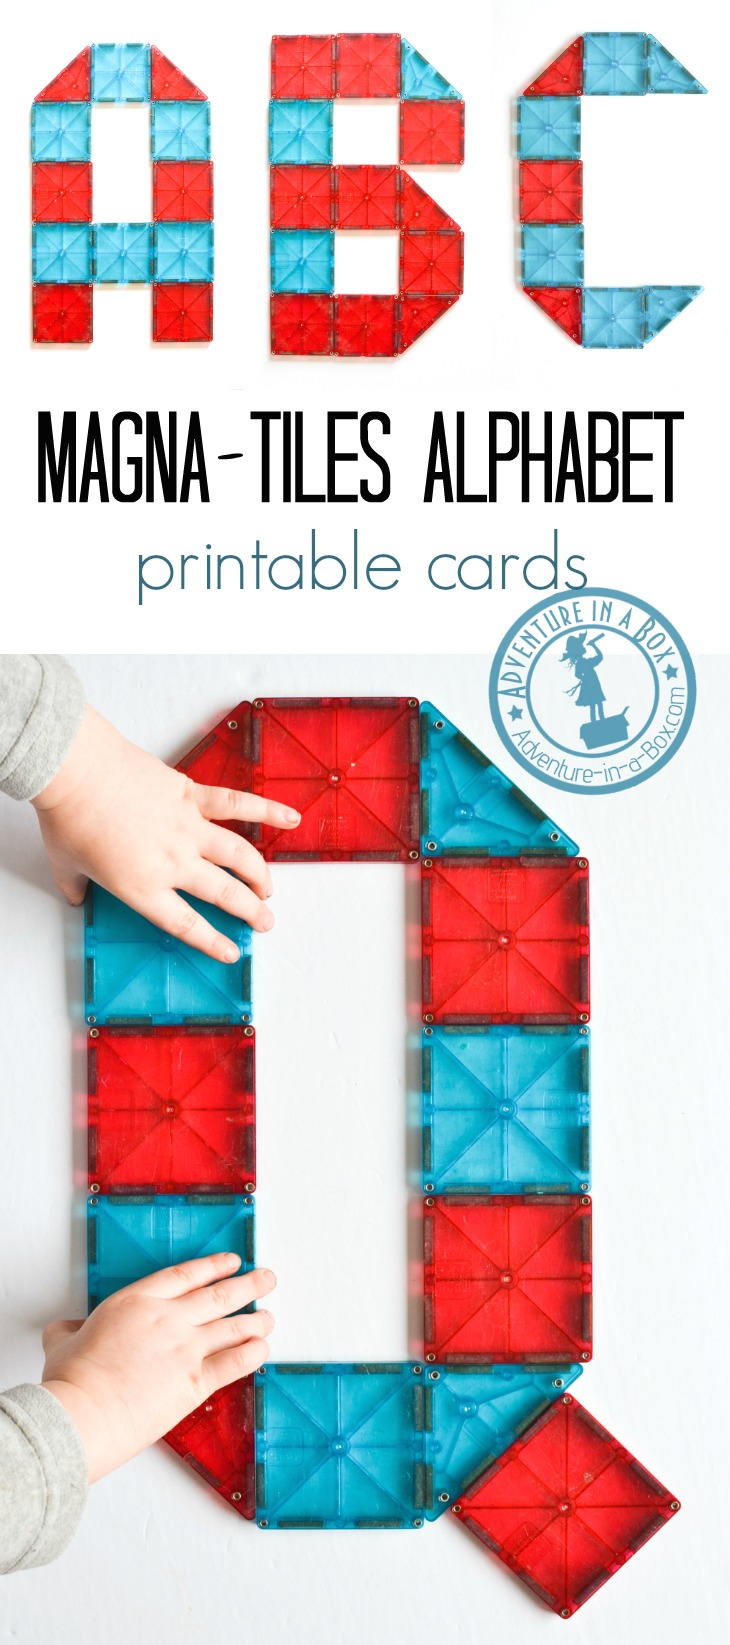 A great addition to your literacy corner, these printable Magna Tile idea cards encourage kids to make lowercase letters from Magna-Tiles, Picasso Tiles, and other magnetic tiles. #homeschool #preschool #kindergarten #magnatiles #printable #literacy